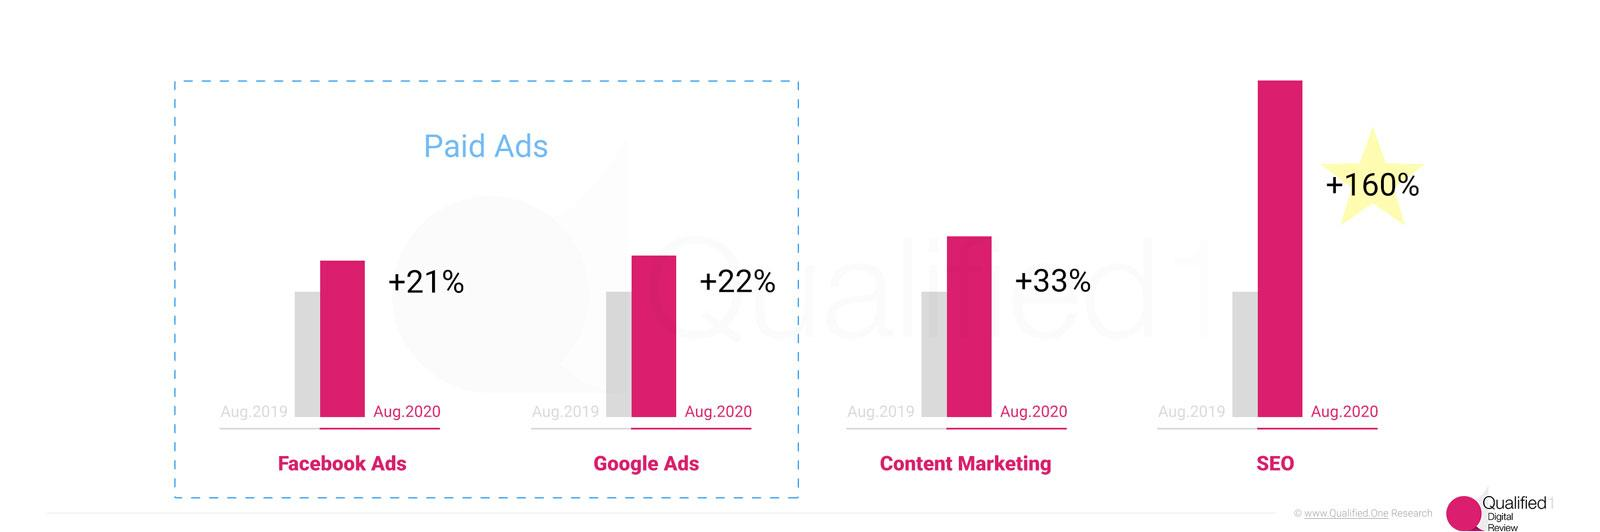 Google Ads and Facebook Ads Content marketing and SEO